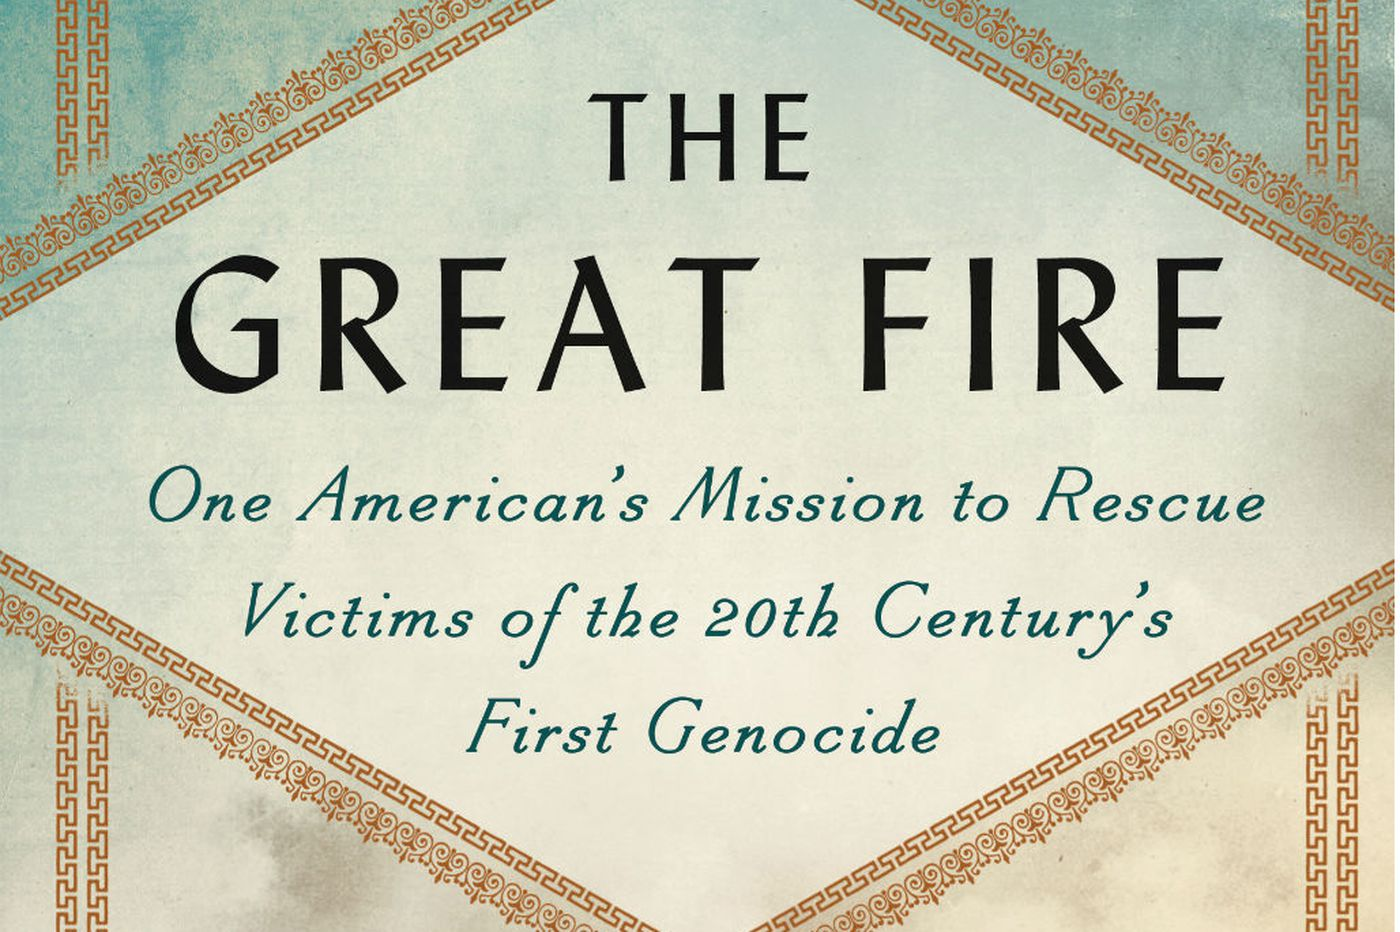 'The Great Fire' by Lou Ureneck: Timely and vivid account of a genocidal moment